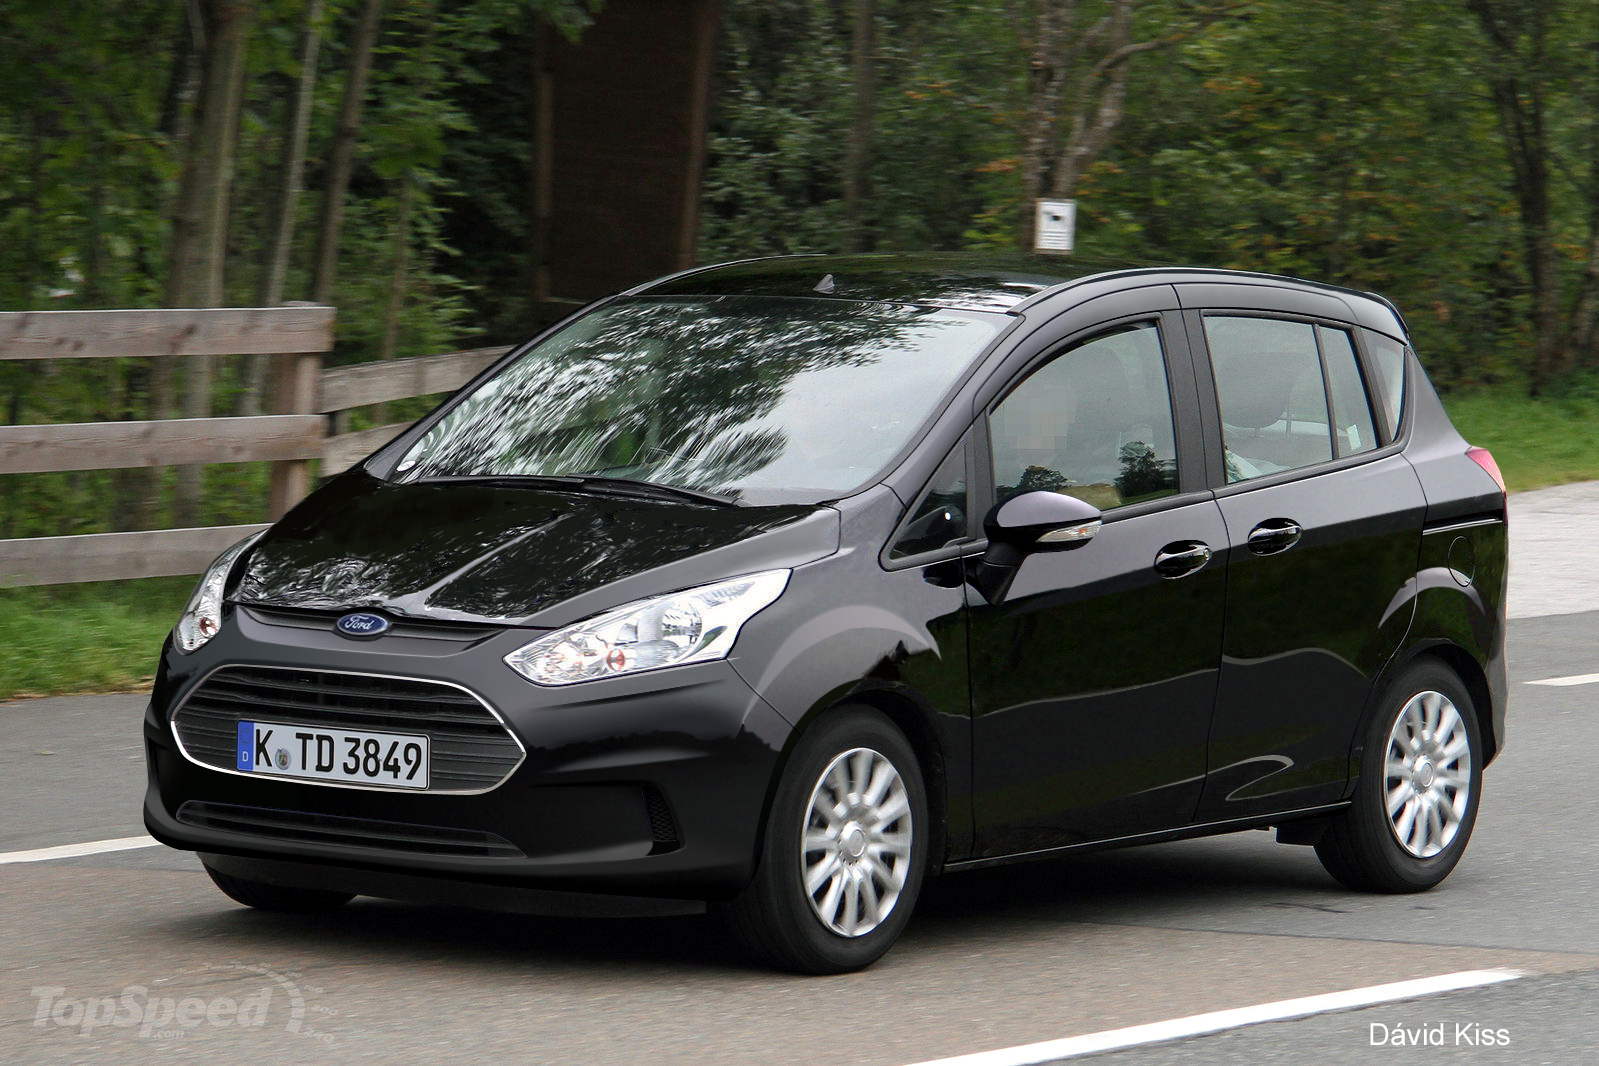 2013 ford b max review gallery top speed. Black Bedroom Furniture Sets. Home Design Ideas